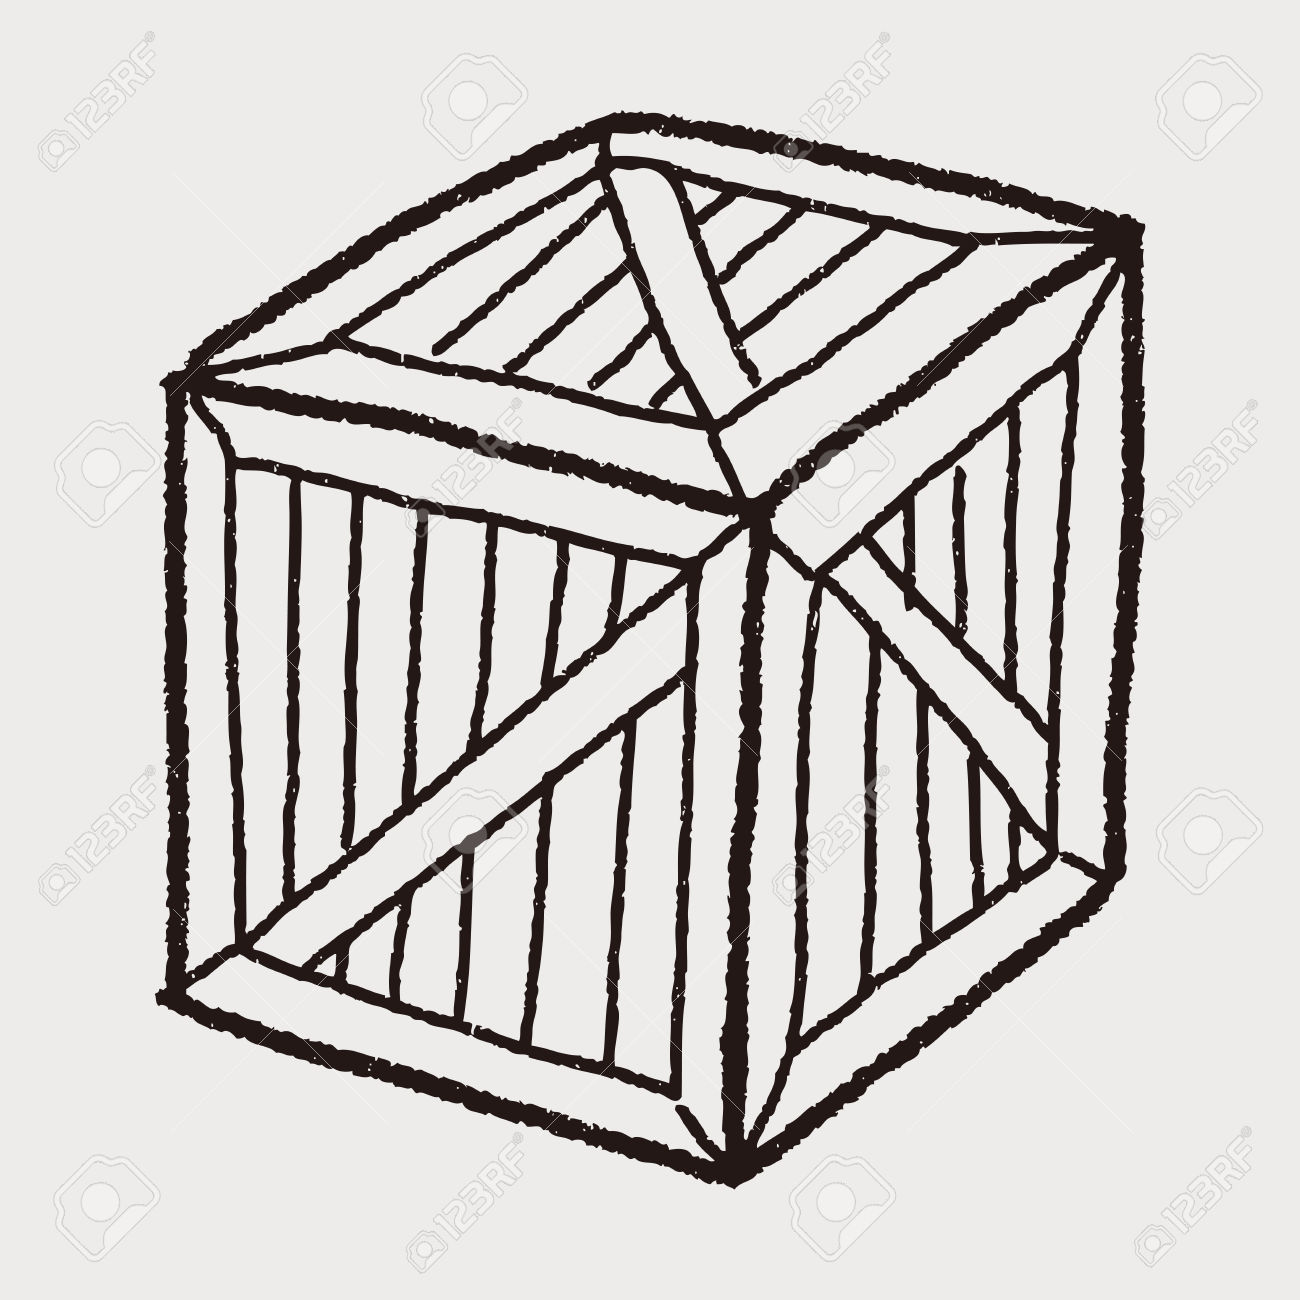 Free Wooden Box Cliparts Download Free Clip Art Free Clip Art On Clipart Library